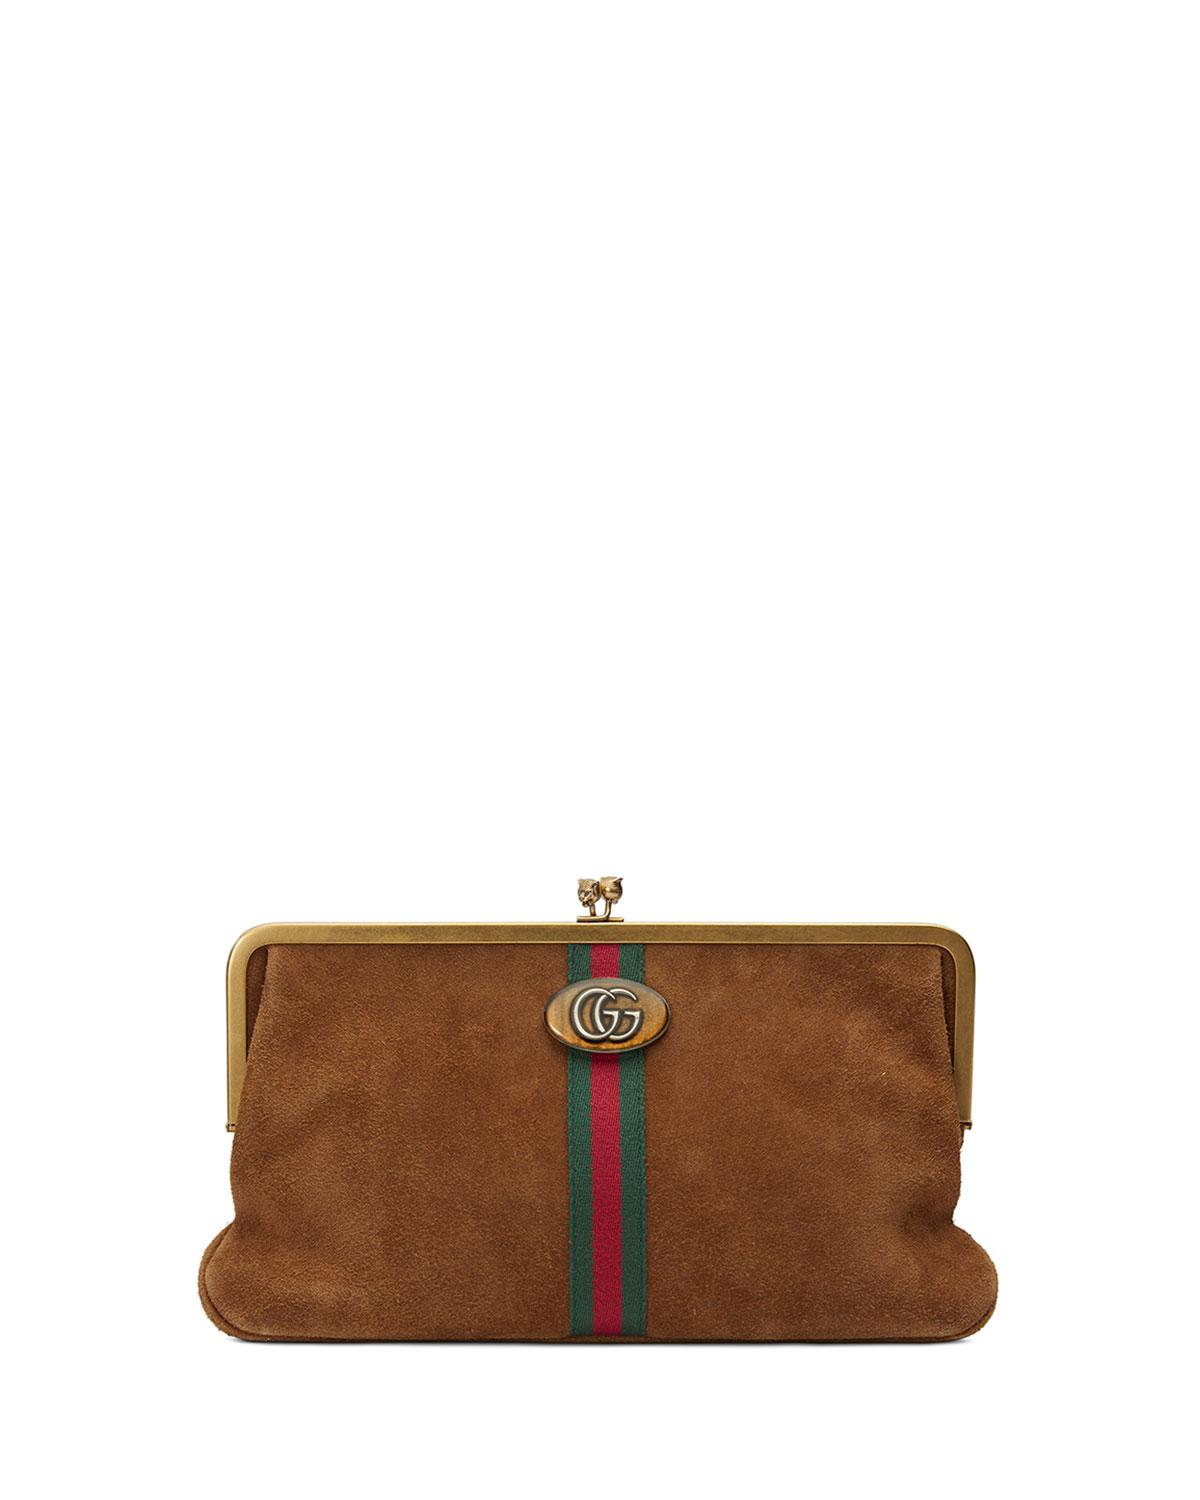 80c4d45c06ad1 Lyst - Gucci Ophidia GG Logo Suede Clutch Bag in Brown - Save 1%